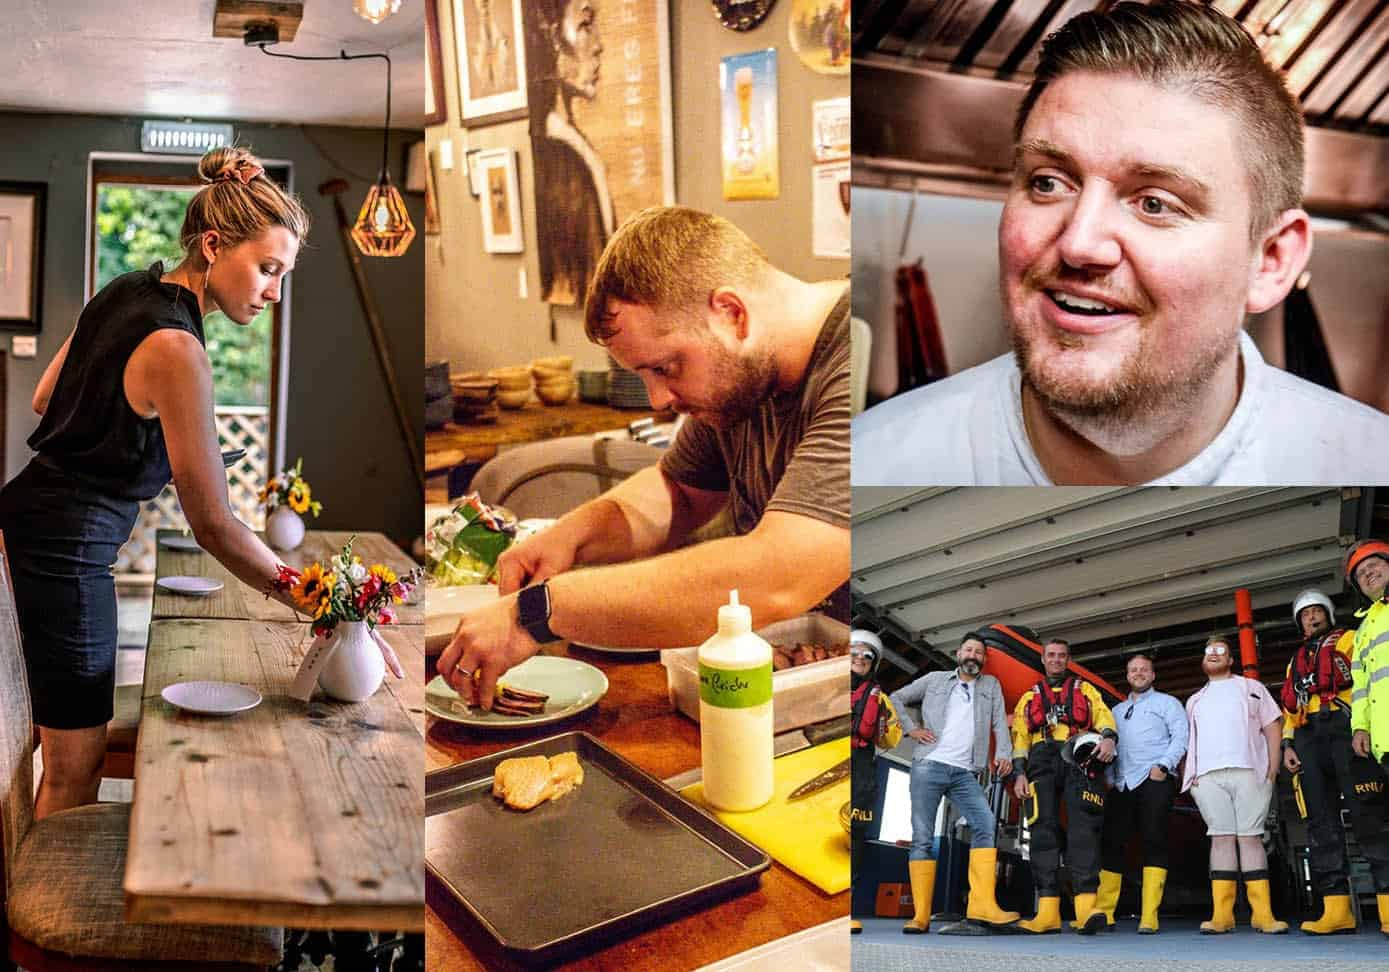 The Small Holding's Sophie Jackson; Will Devlin at Fuggles Beer Cafe; The Compasses' Rob Taylor; RNLI Fish Supper